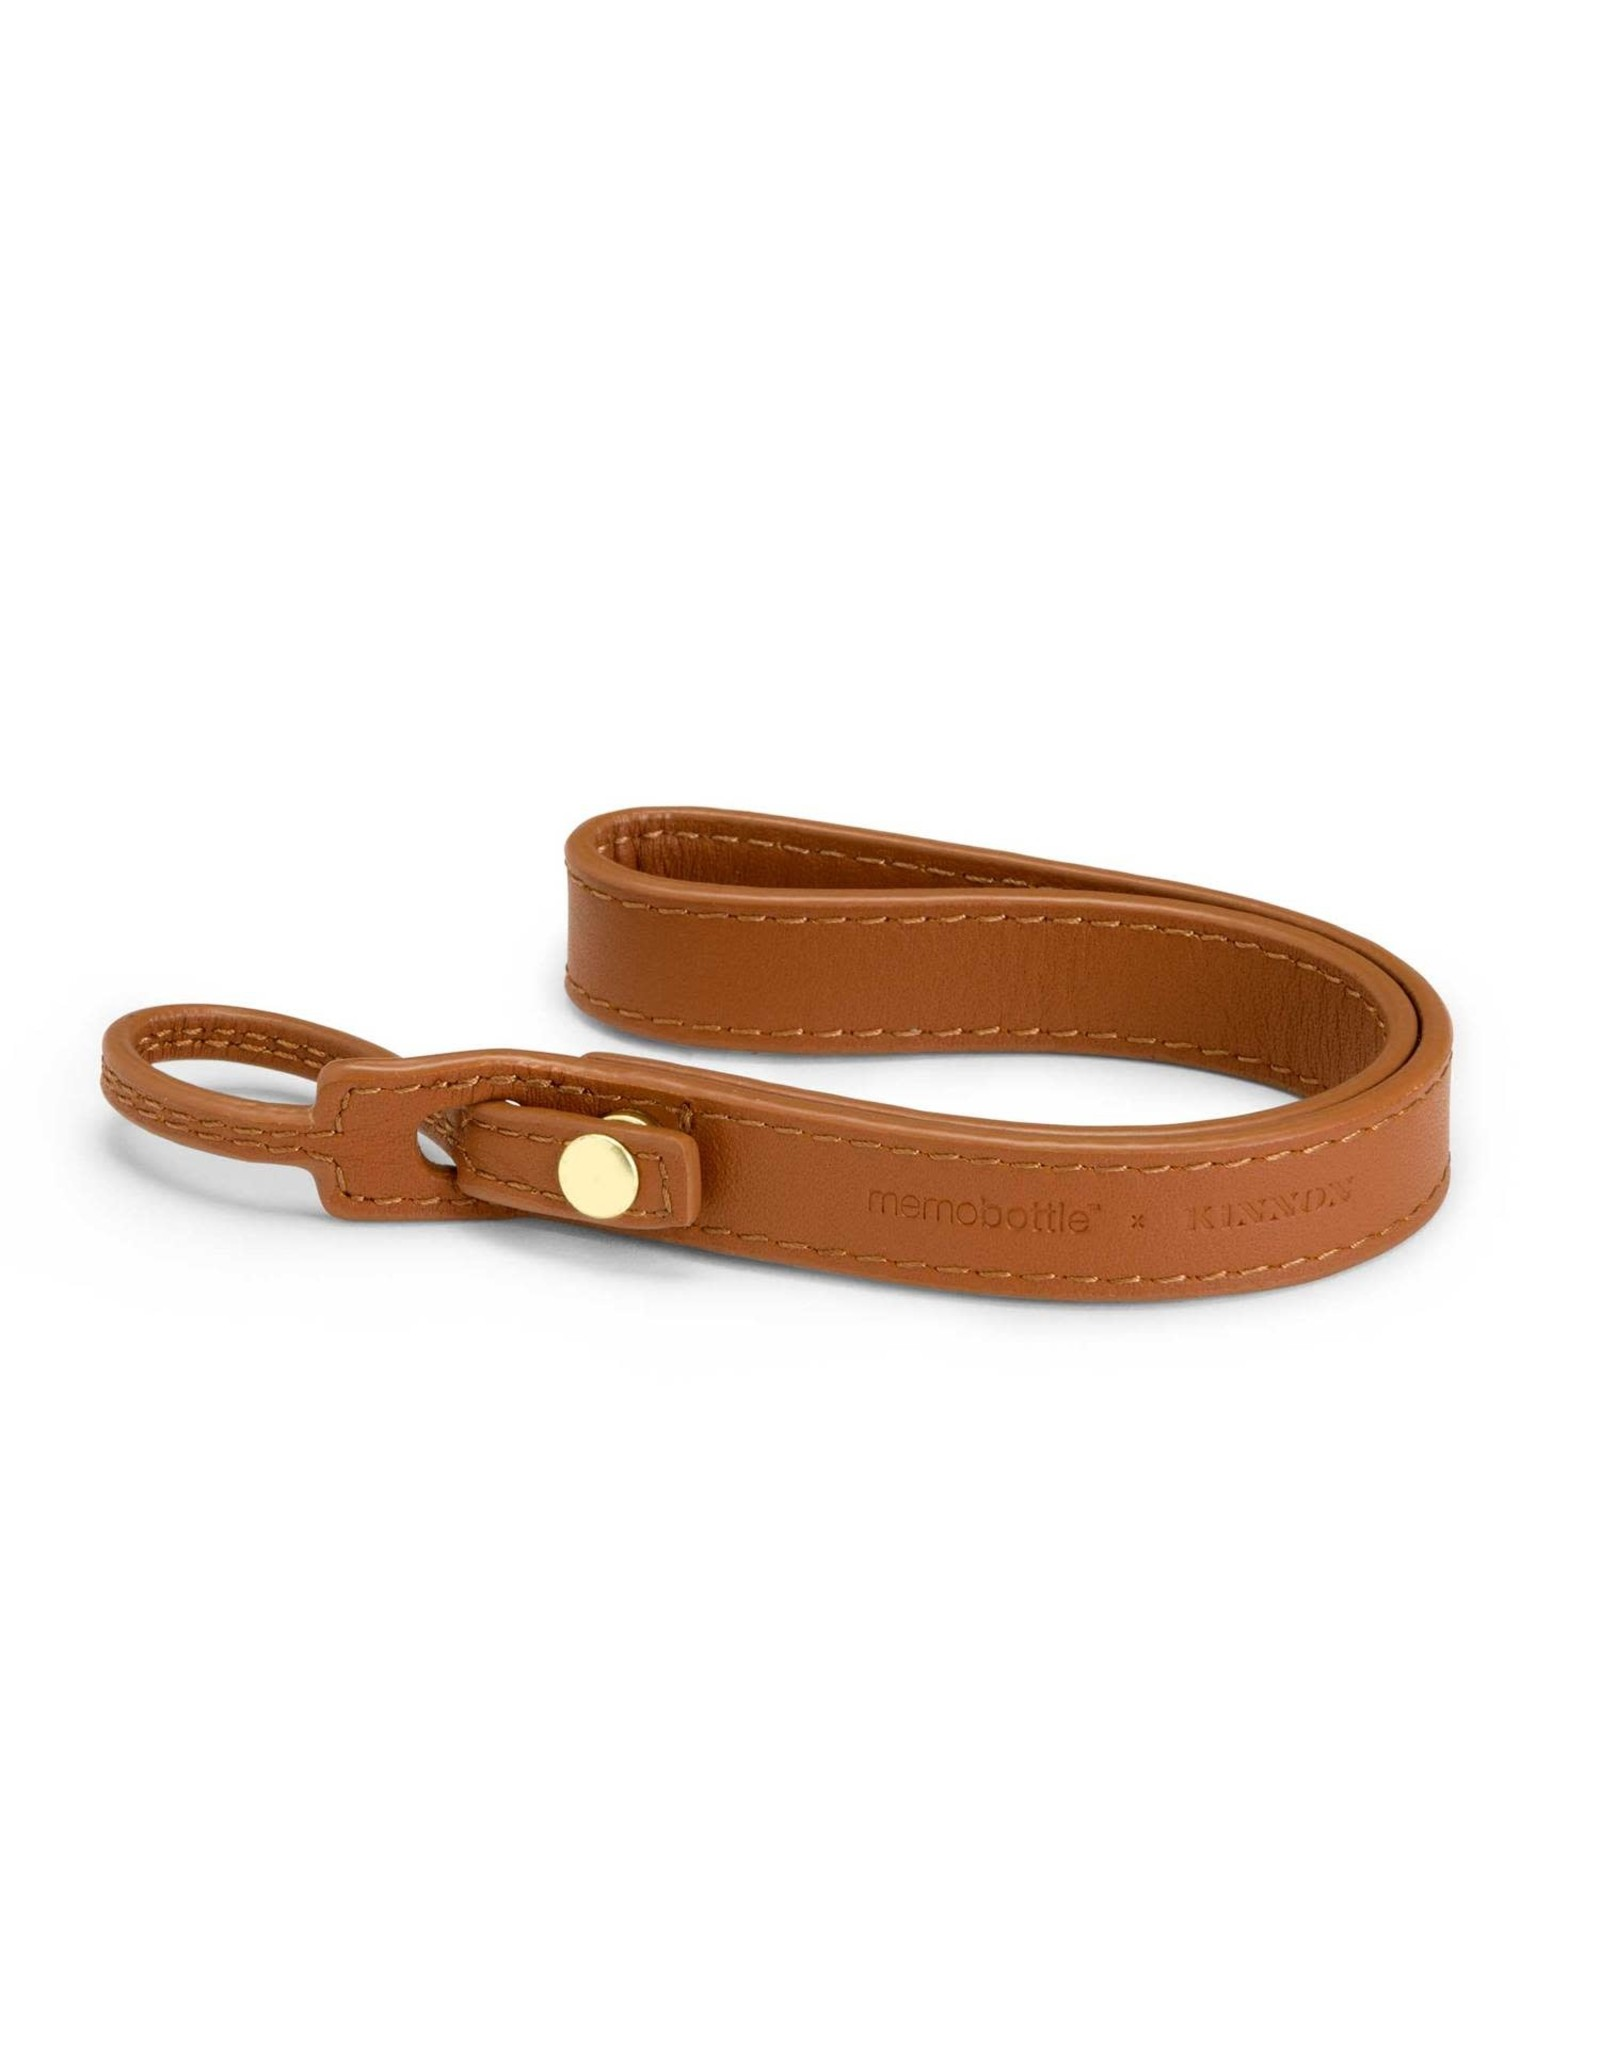 Memobottle Leather Lanyard